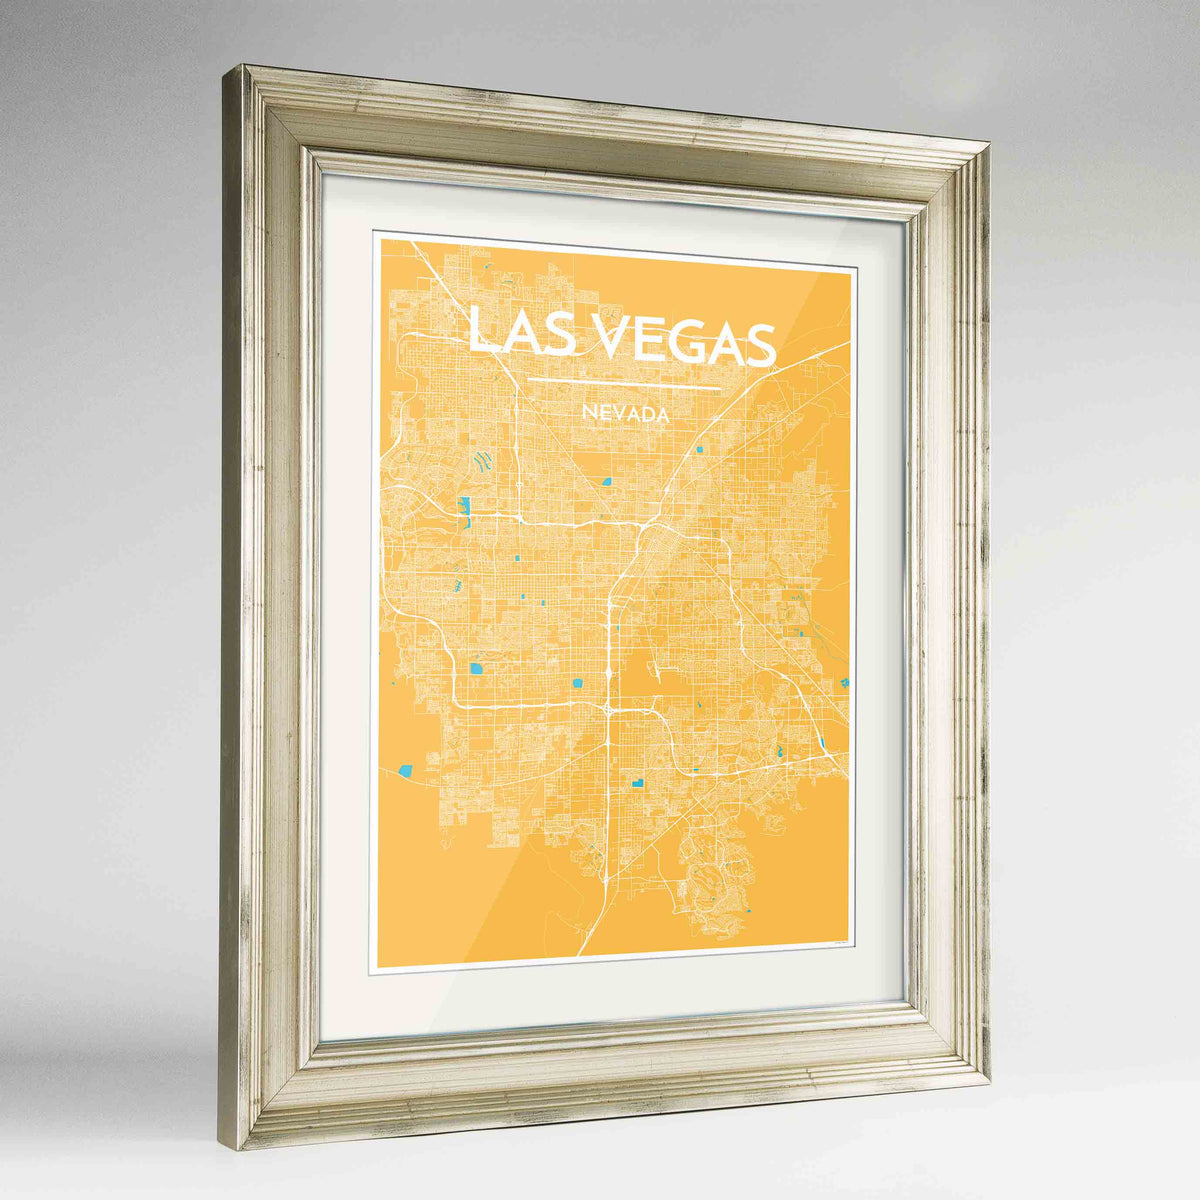 "Framed Las Vegas Map Art Print 24x36"" Champagne frame Point Two Design Group"